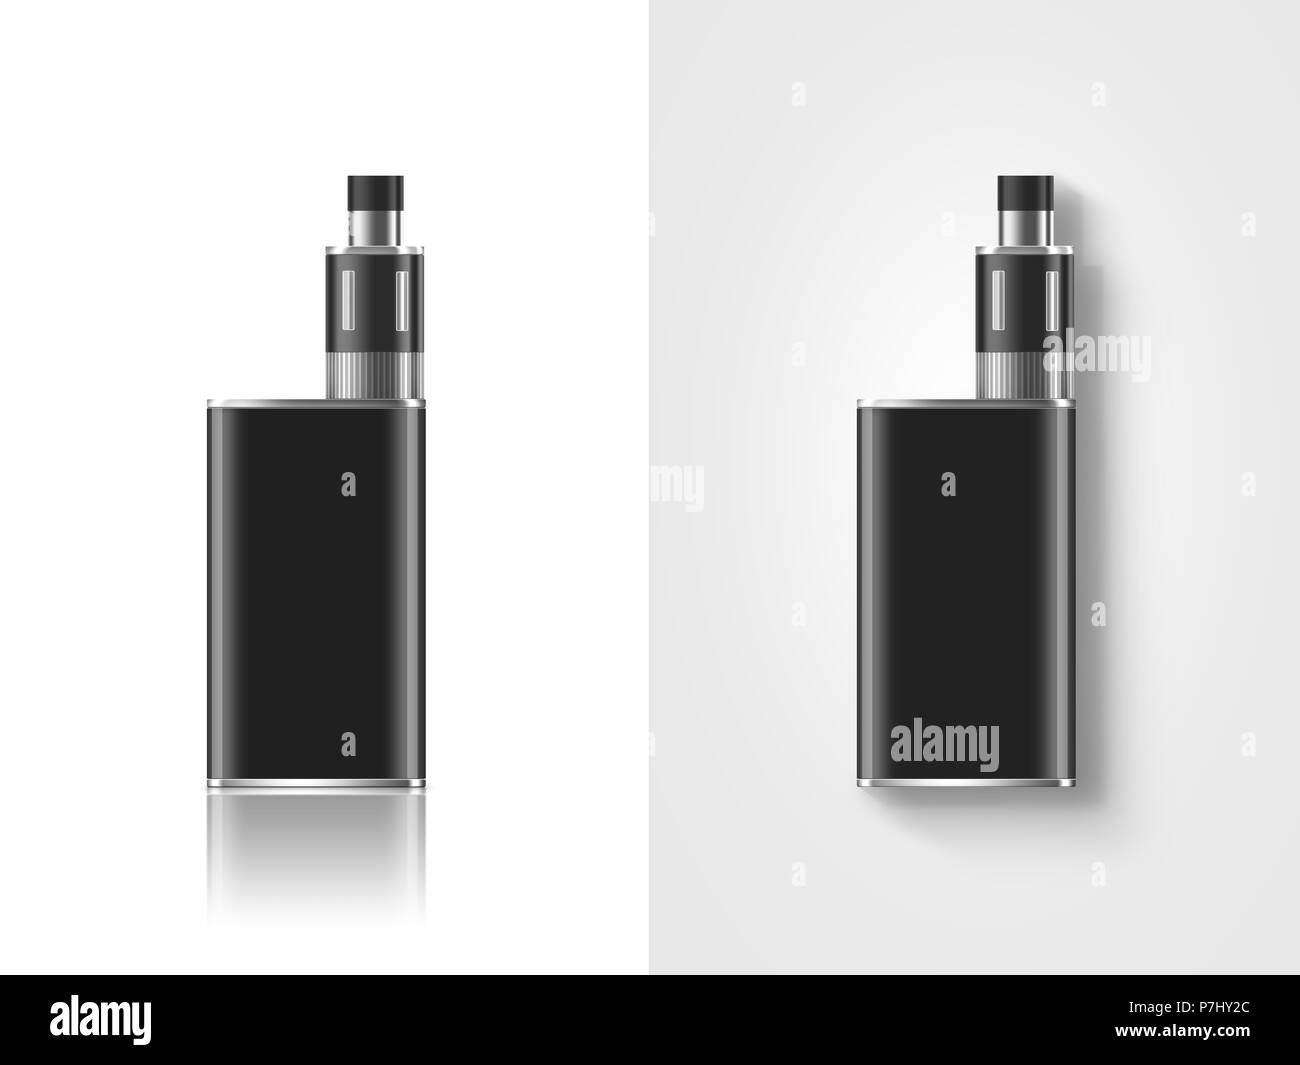 Blank black vape mod box mockup isolated, clipping path, stand and lies, 3d illustration. Clear smoking vapor mock up template. Modbox vaporizer devic Stock Photo